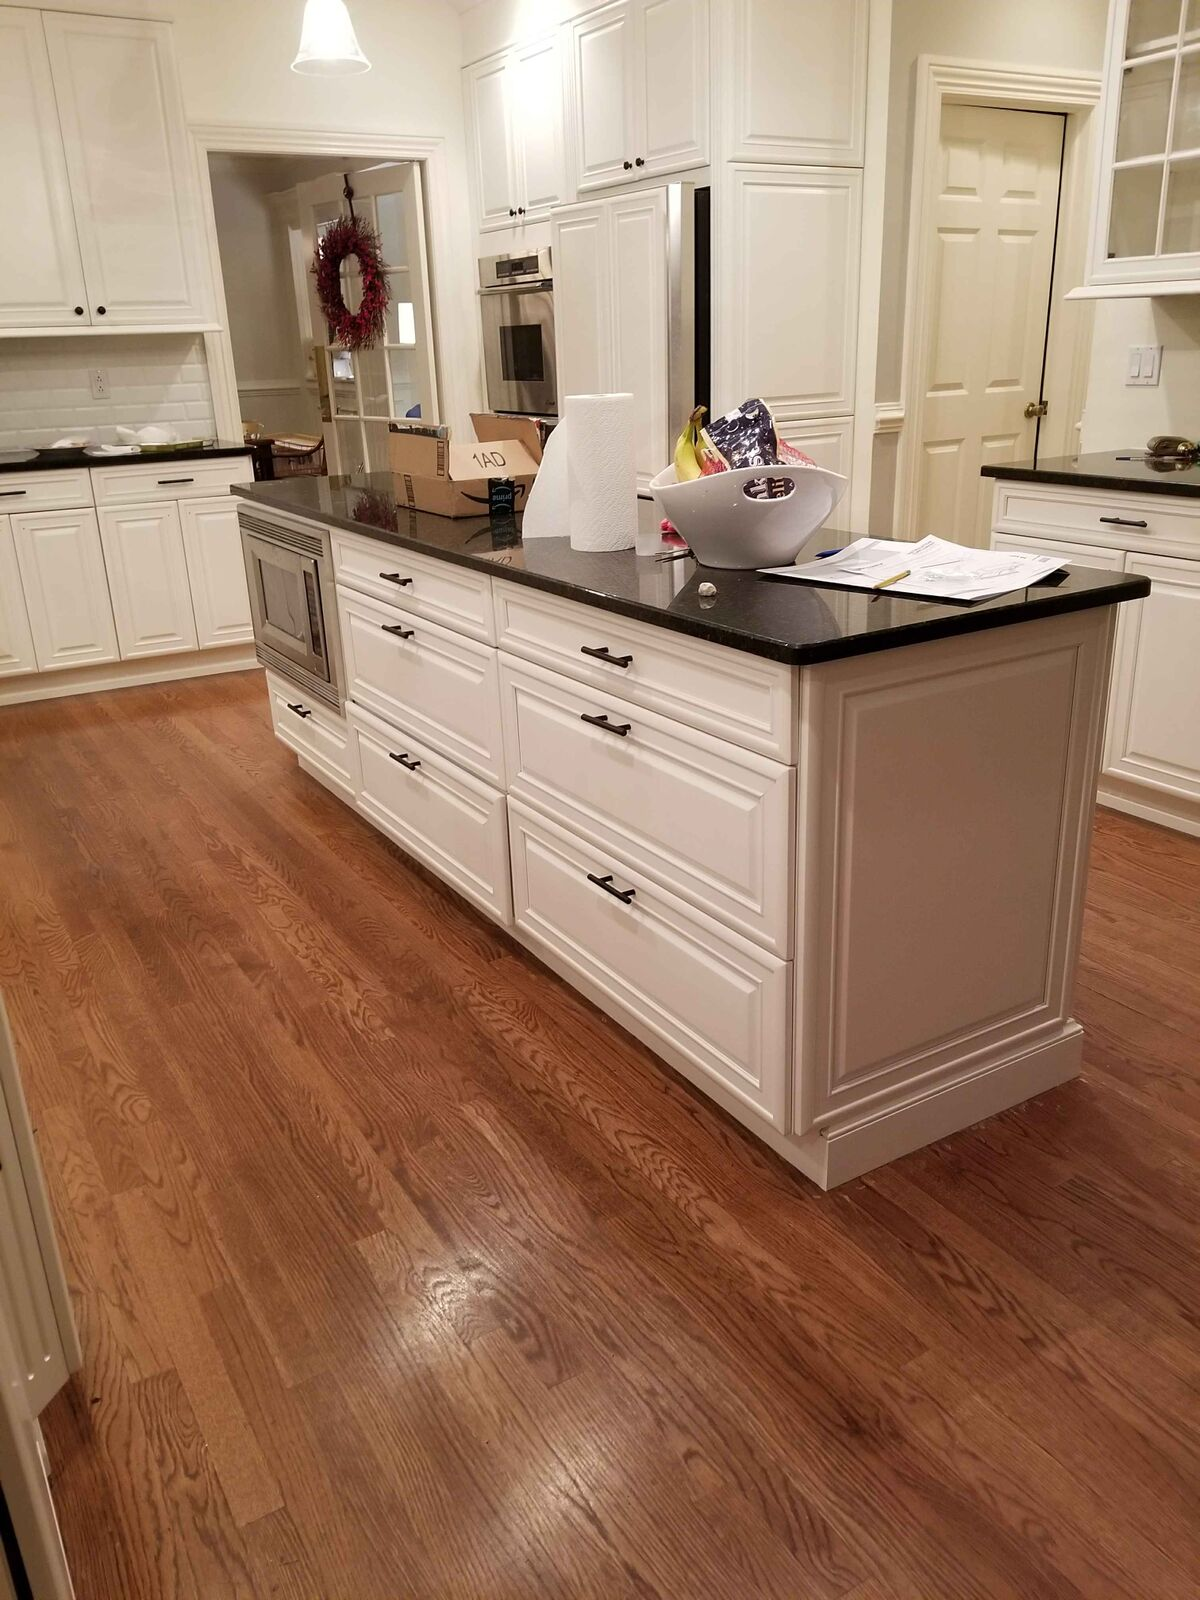 Interior kitchen cabinet painting - CertaPro Painters in Hopewell, NJ